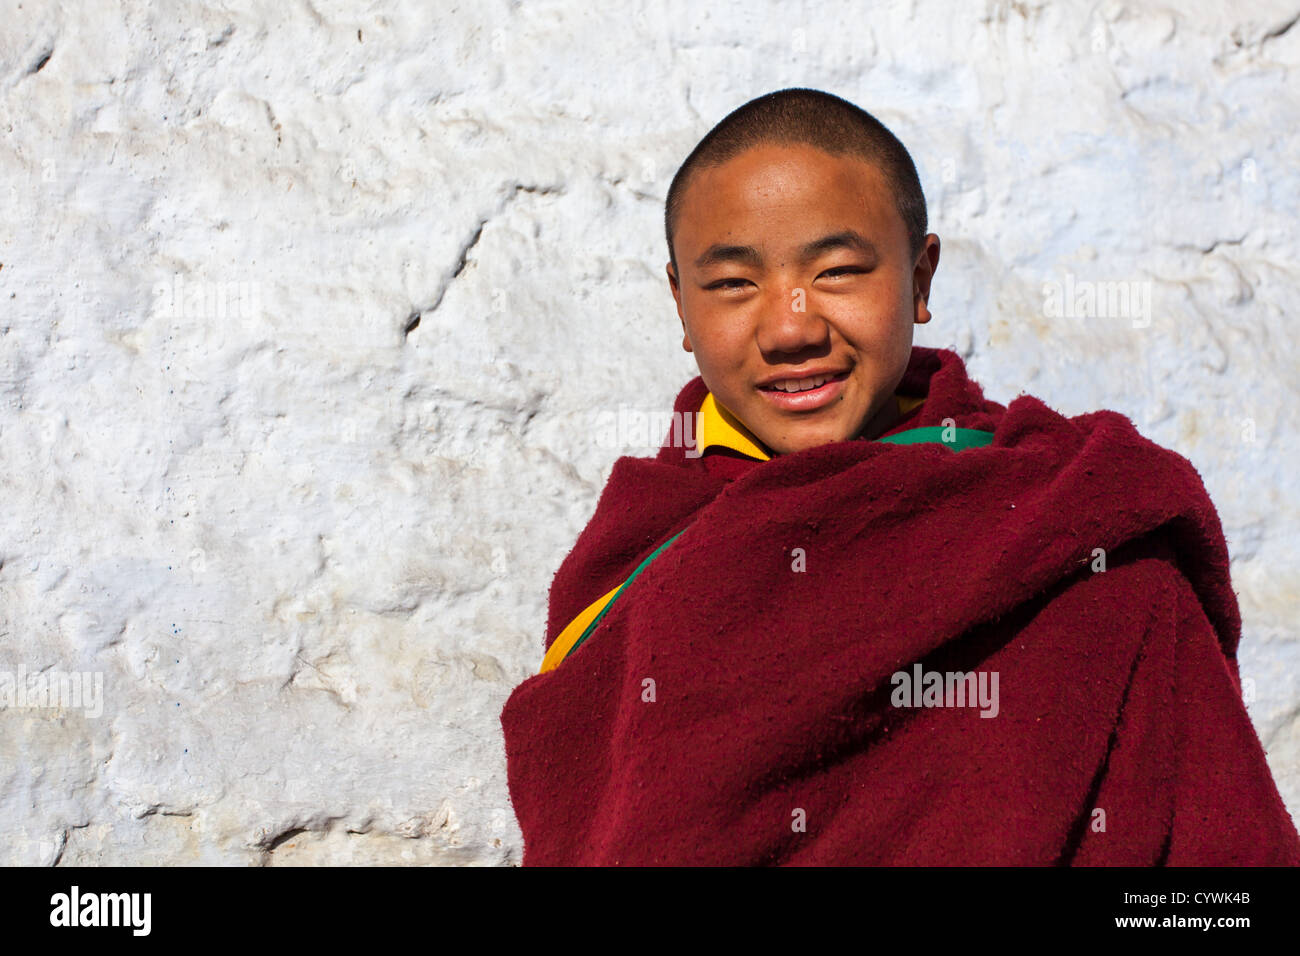 A young monk from Galden Namgey Lhatse Monastery, Arunachal Pradesh, India - Stock Image